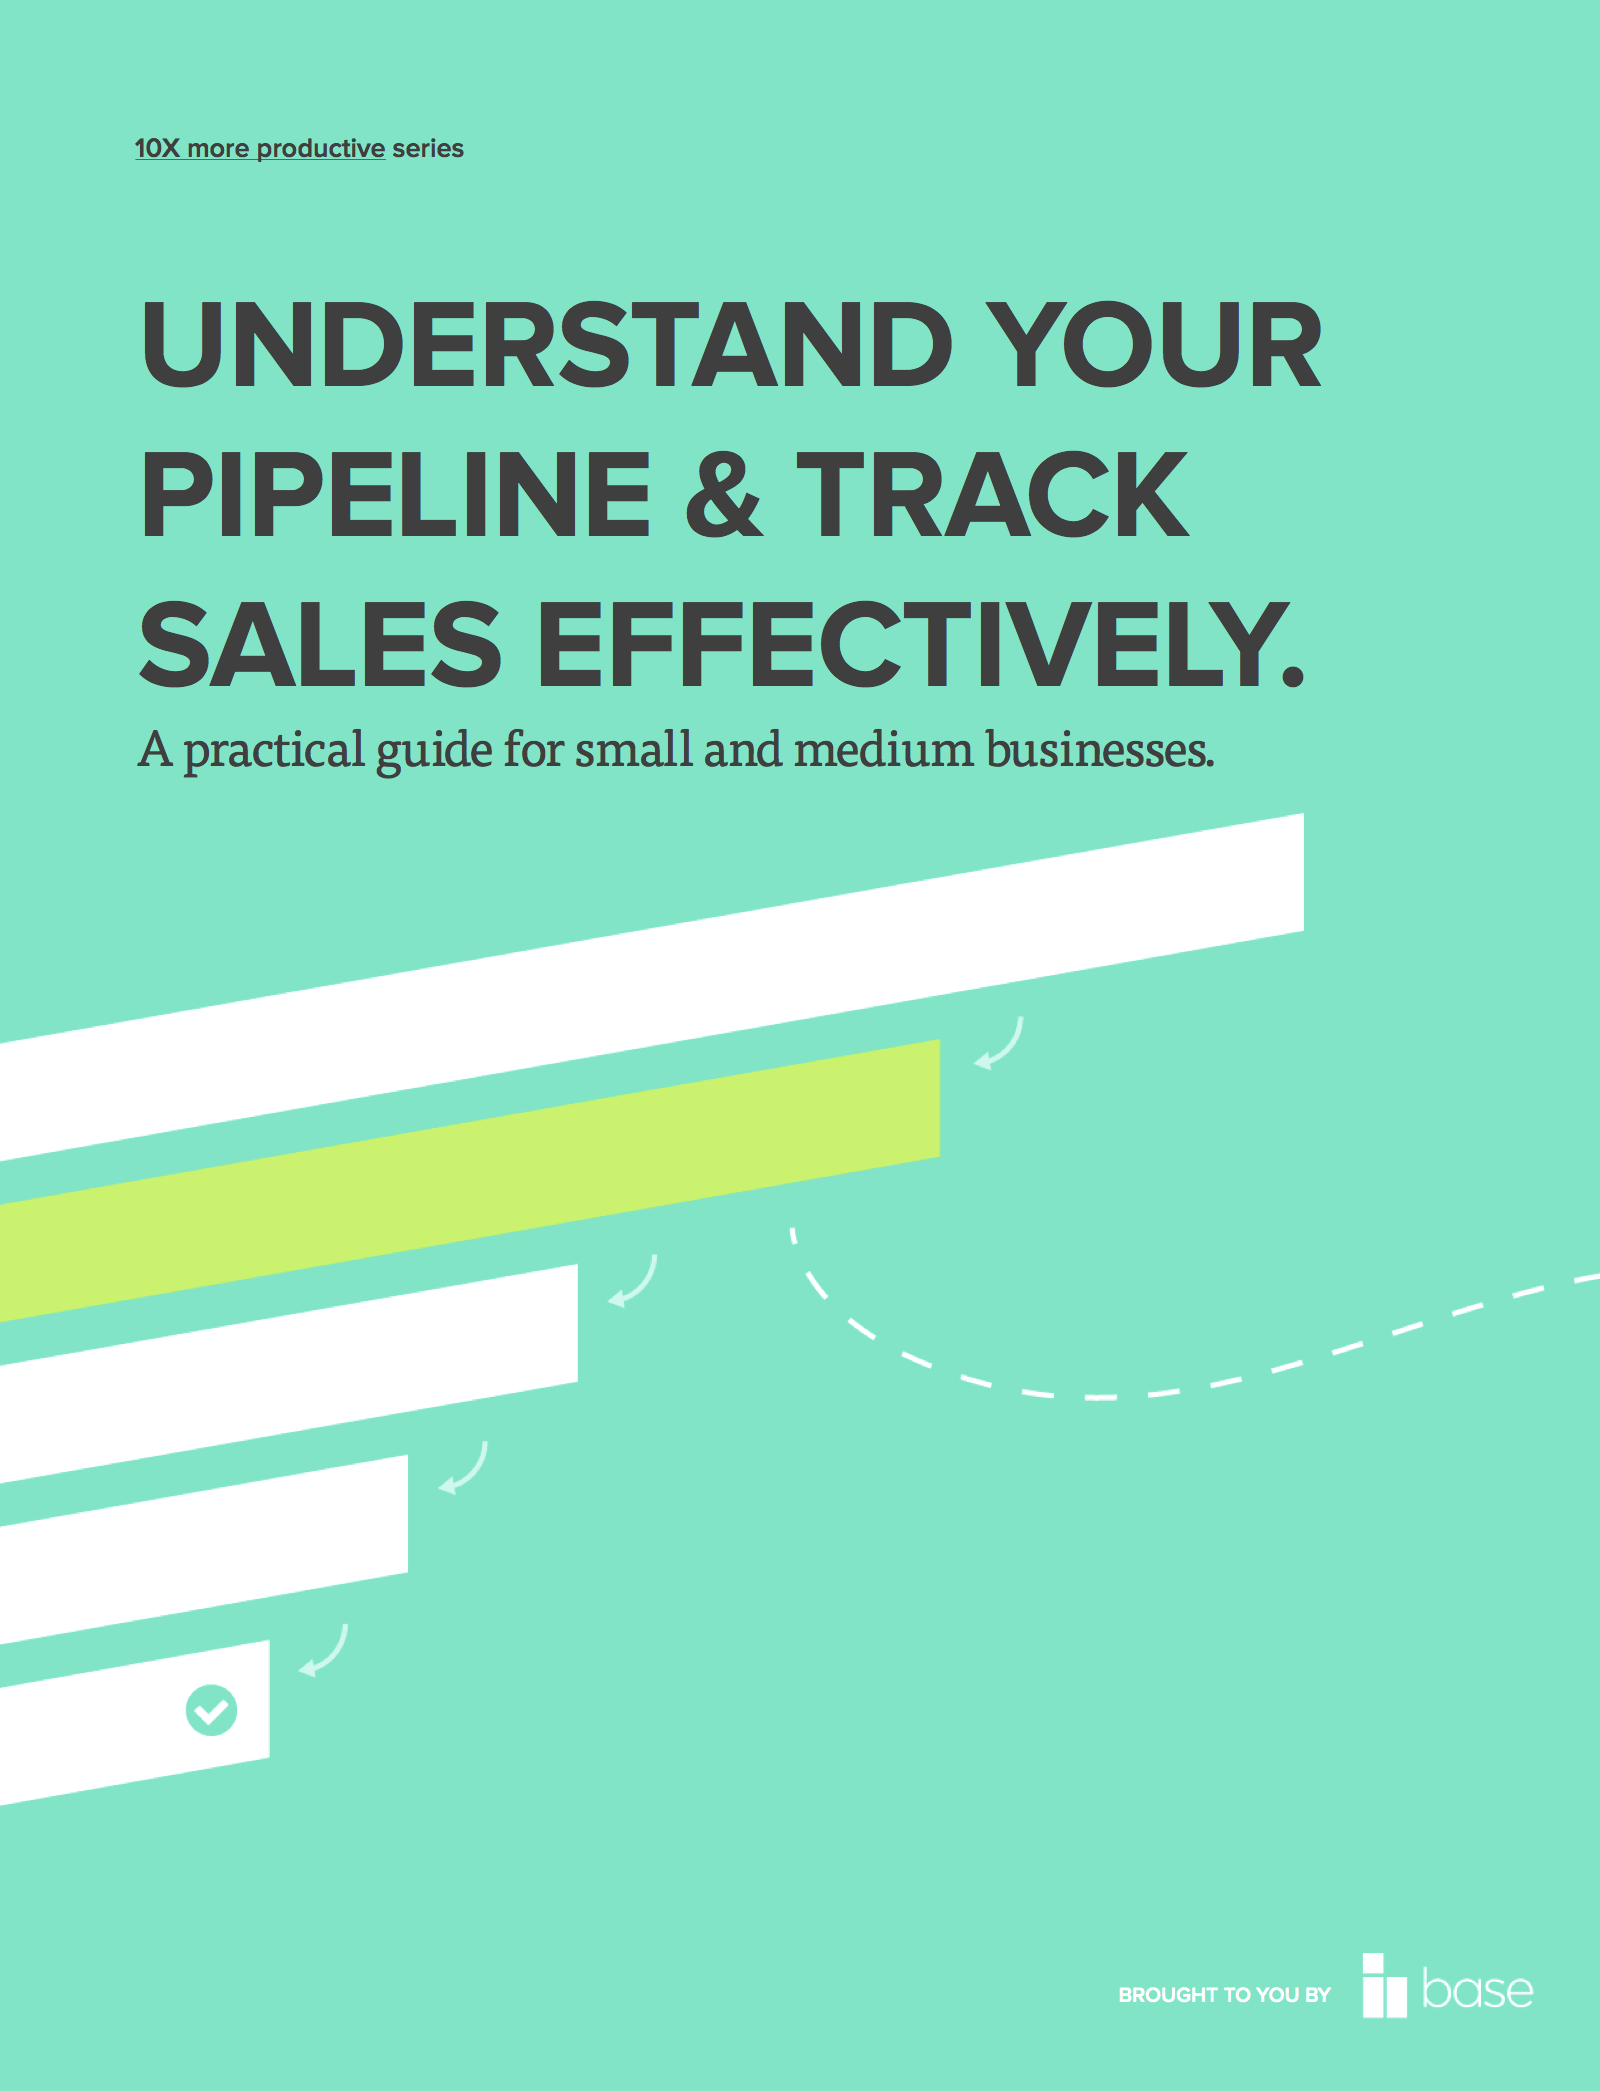 Understand your pipeline and track sales effectively